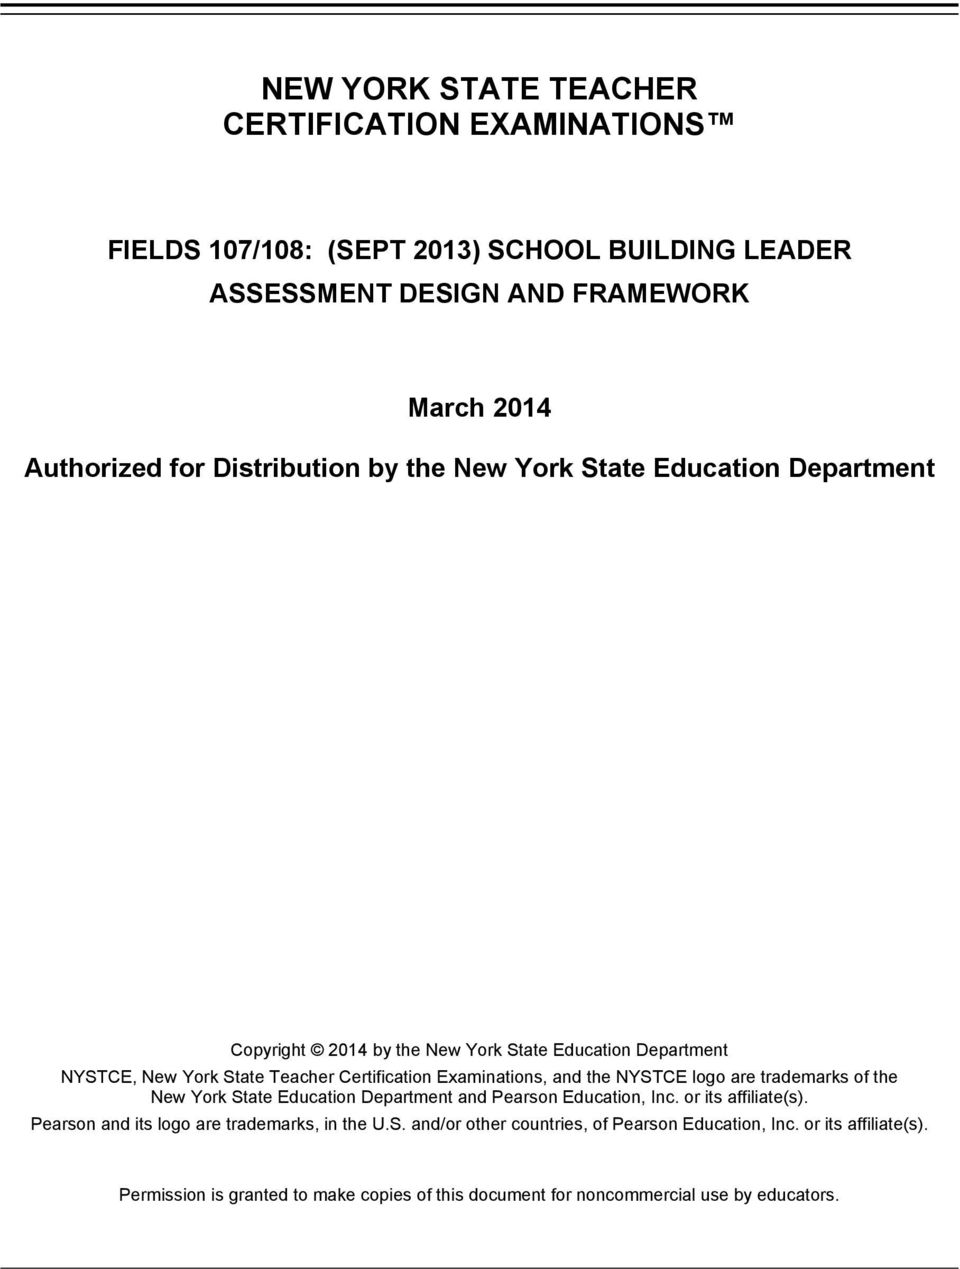 New York State Teacher Certification Examinations Pdf